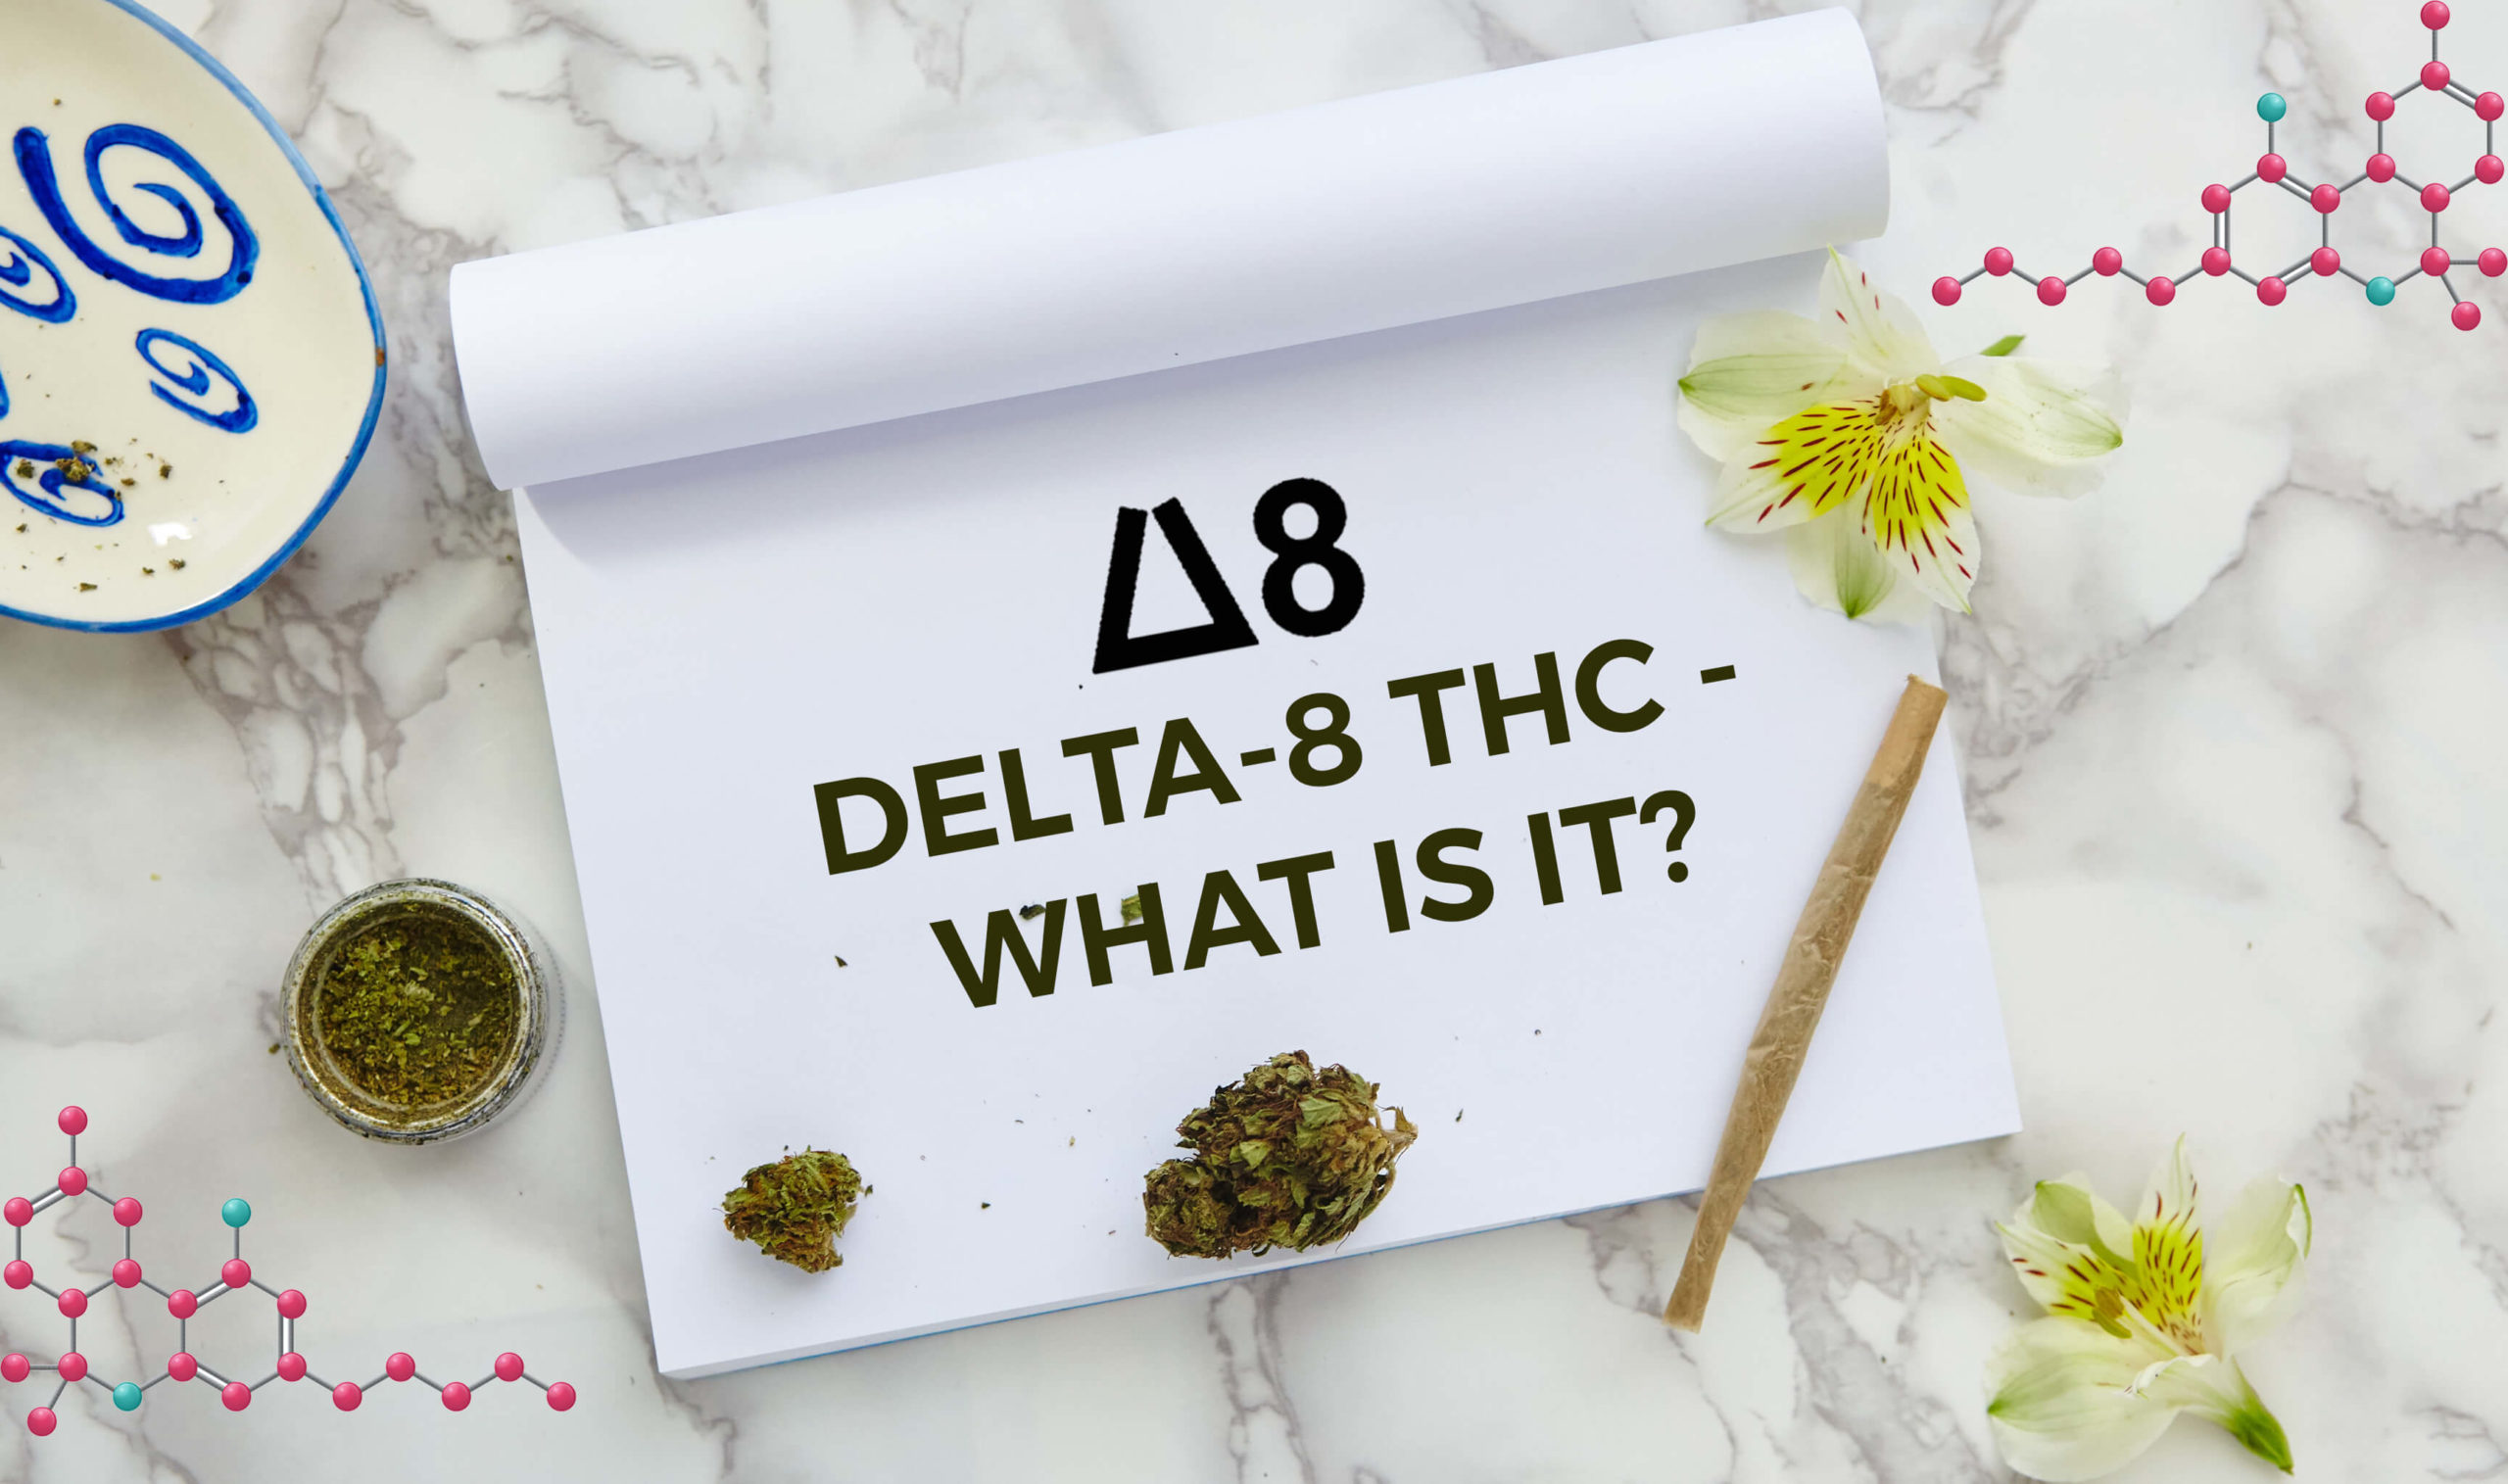 Delta-8 THC - What Is It